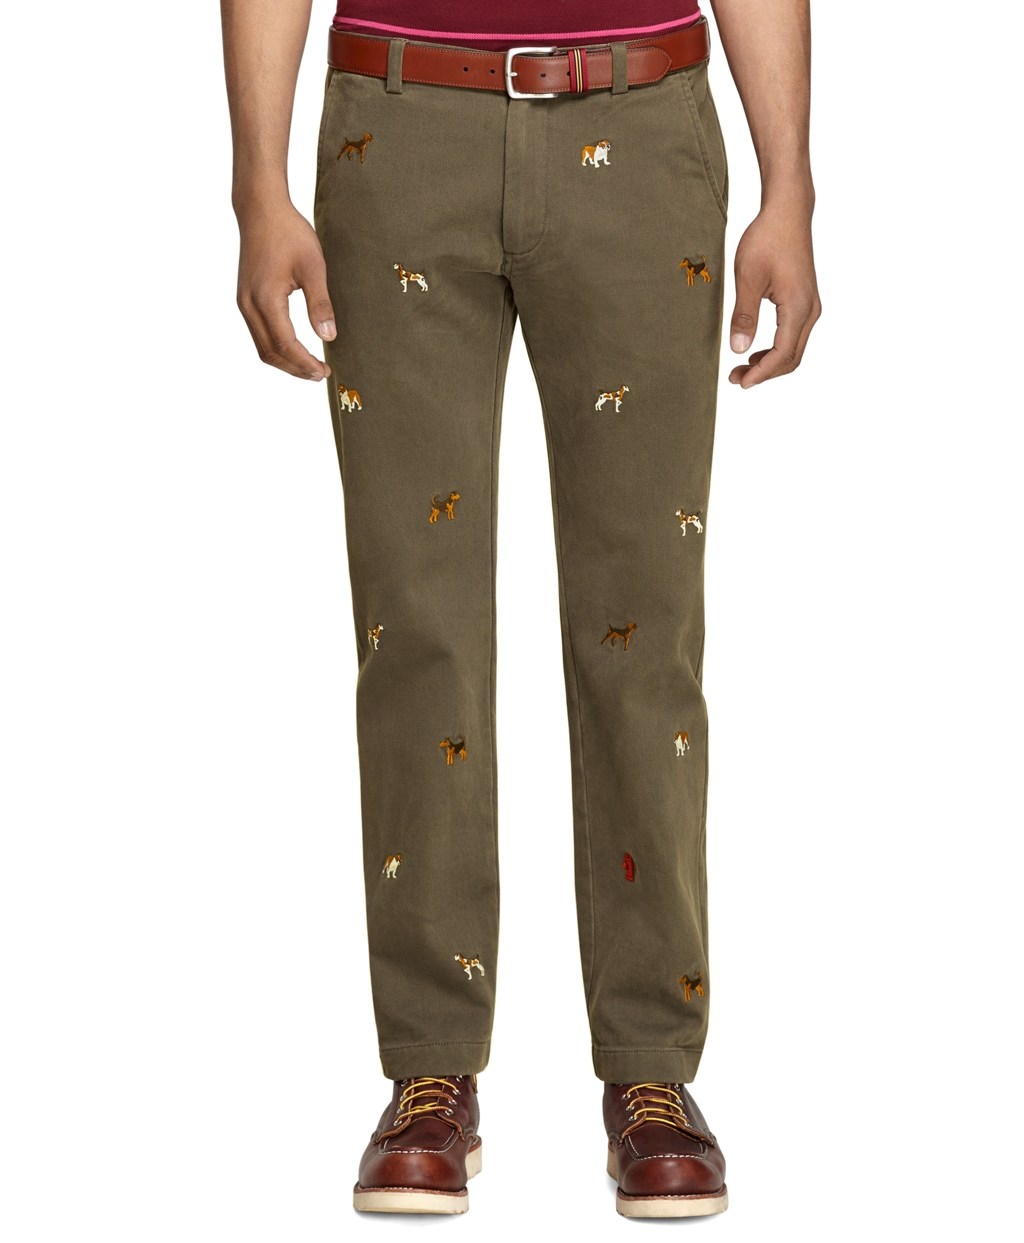 Lyst - Brooks Brothers Plainfront Pineapple Embroidered Shorts in Natural  for Men